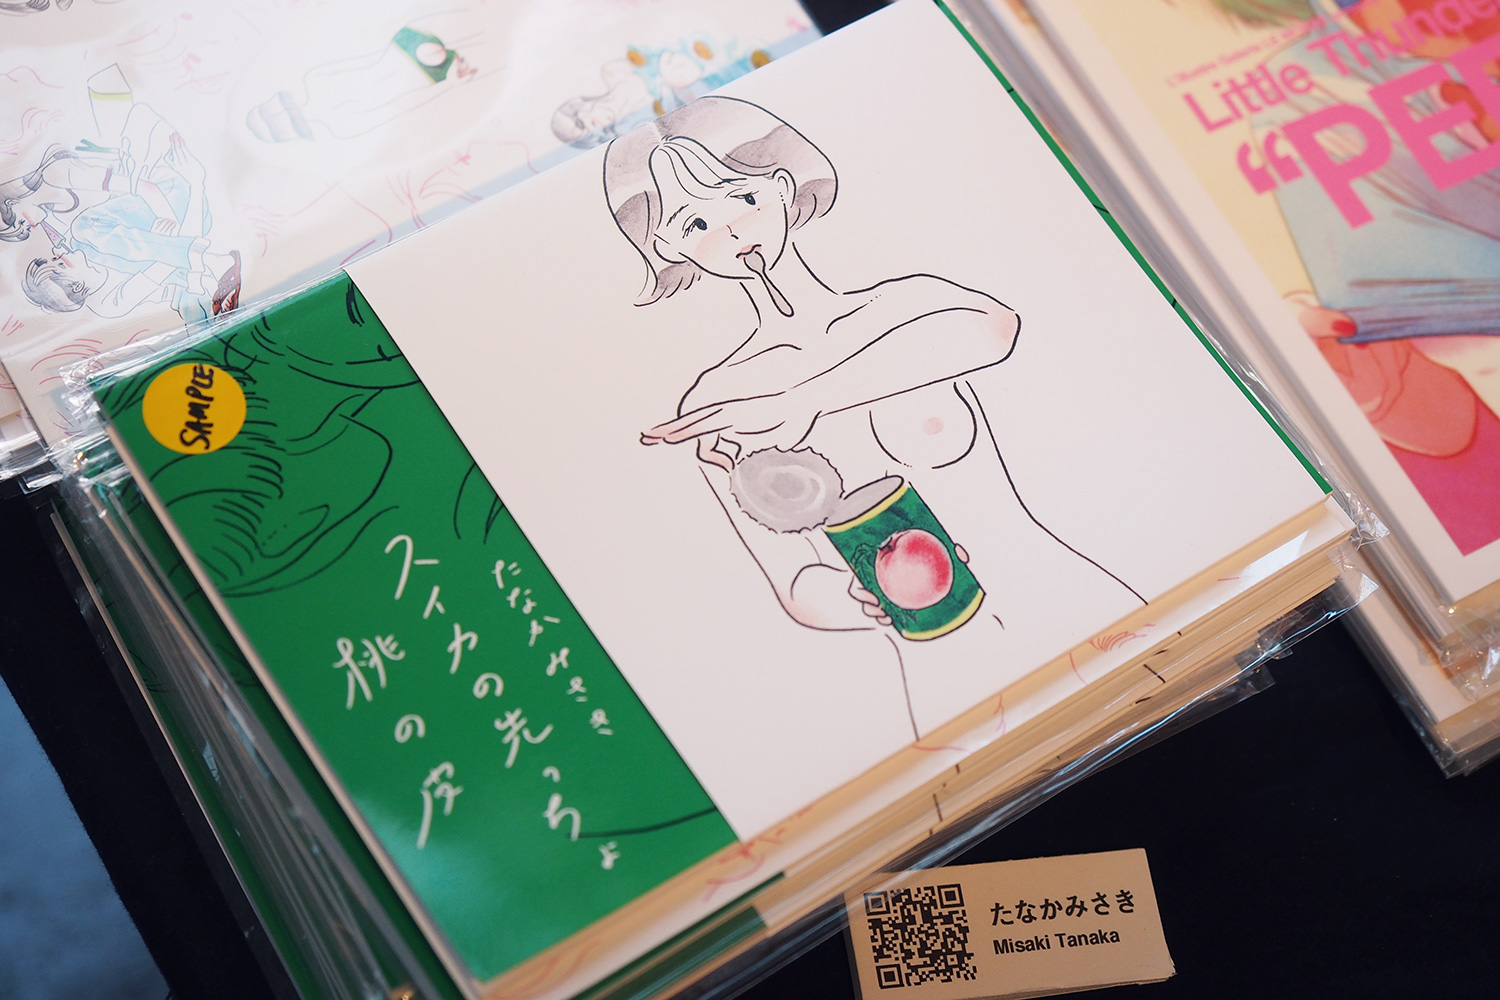 taipei-art-book-fair-12